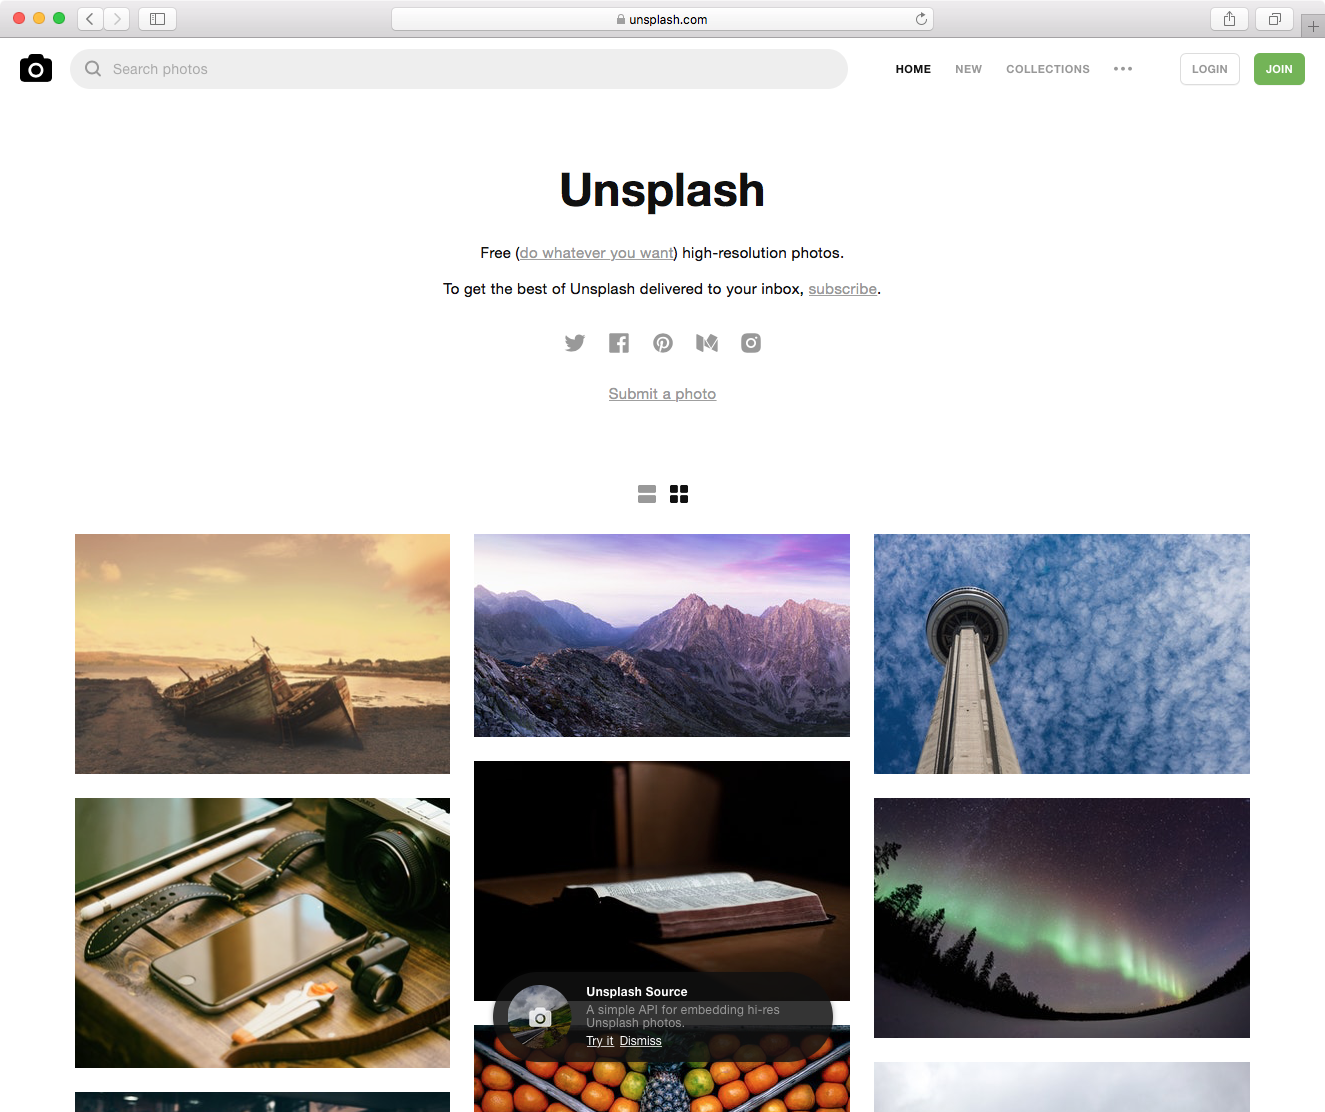 Unsplash - Unsplash is a platform powered by 210,000+ free (do whatever you want) high-resolution photos, gifted by the world's most generous community of photographers.AE cohort member Roberta Scalabrin Reis is a software developer for Unsplash who is fueled by curiosity and challenges.How can we help? Spread the word about Unsplash in the community and provide product feedback, more specifically on the search feature. www.unsplash.com